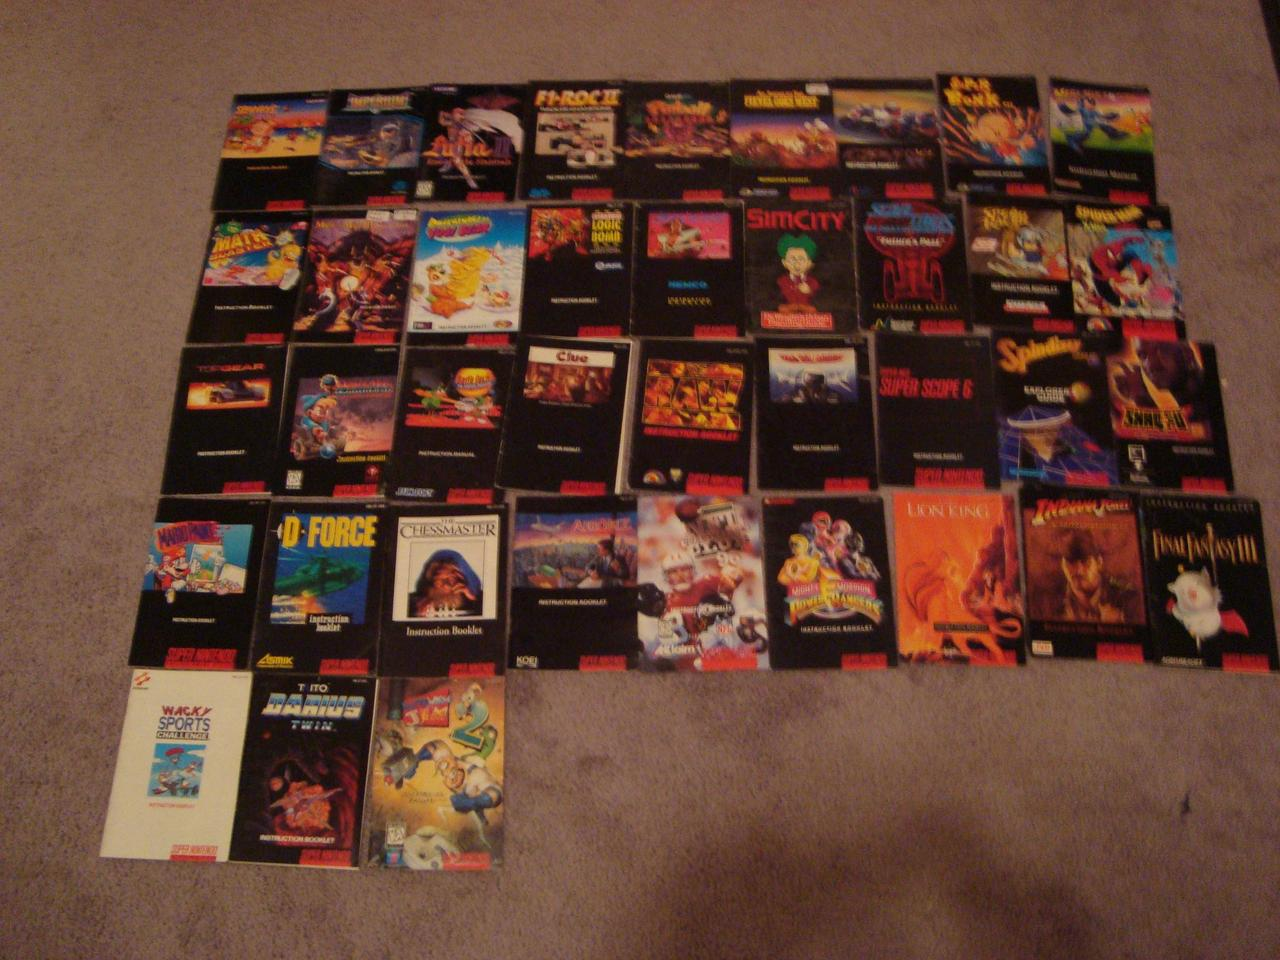 Part of the $25,000 SNES collection's boxes